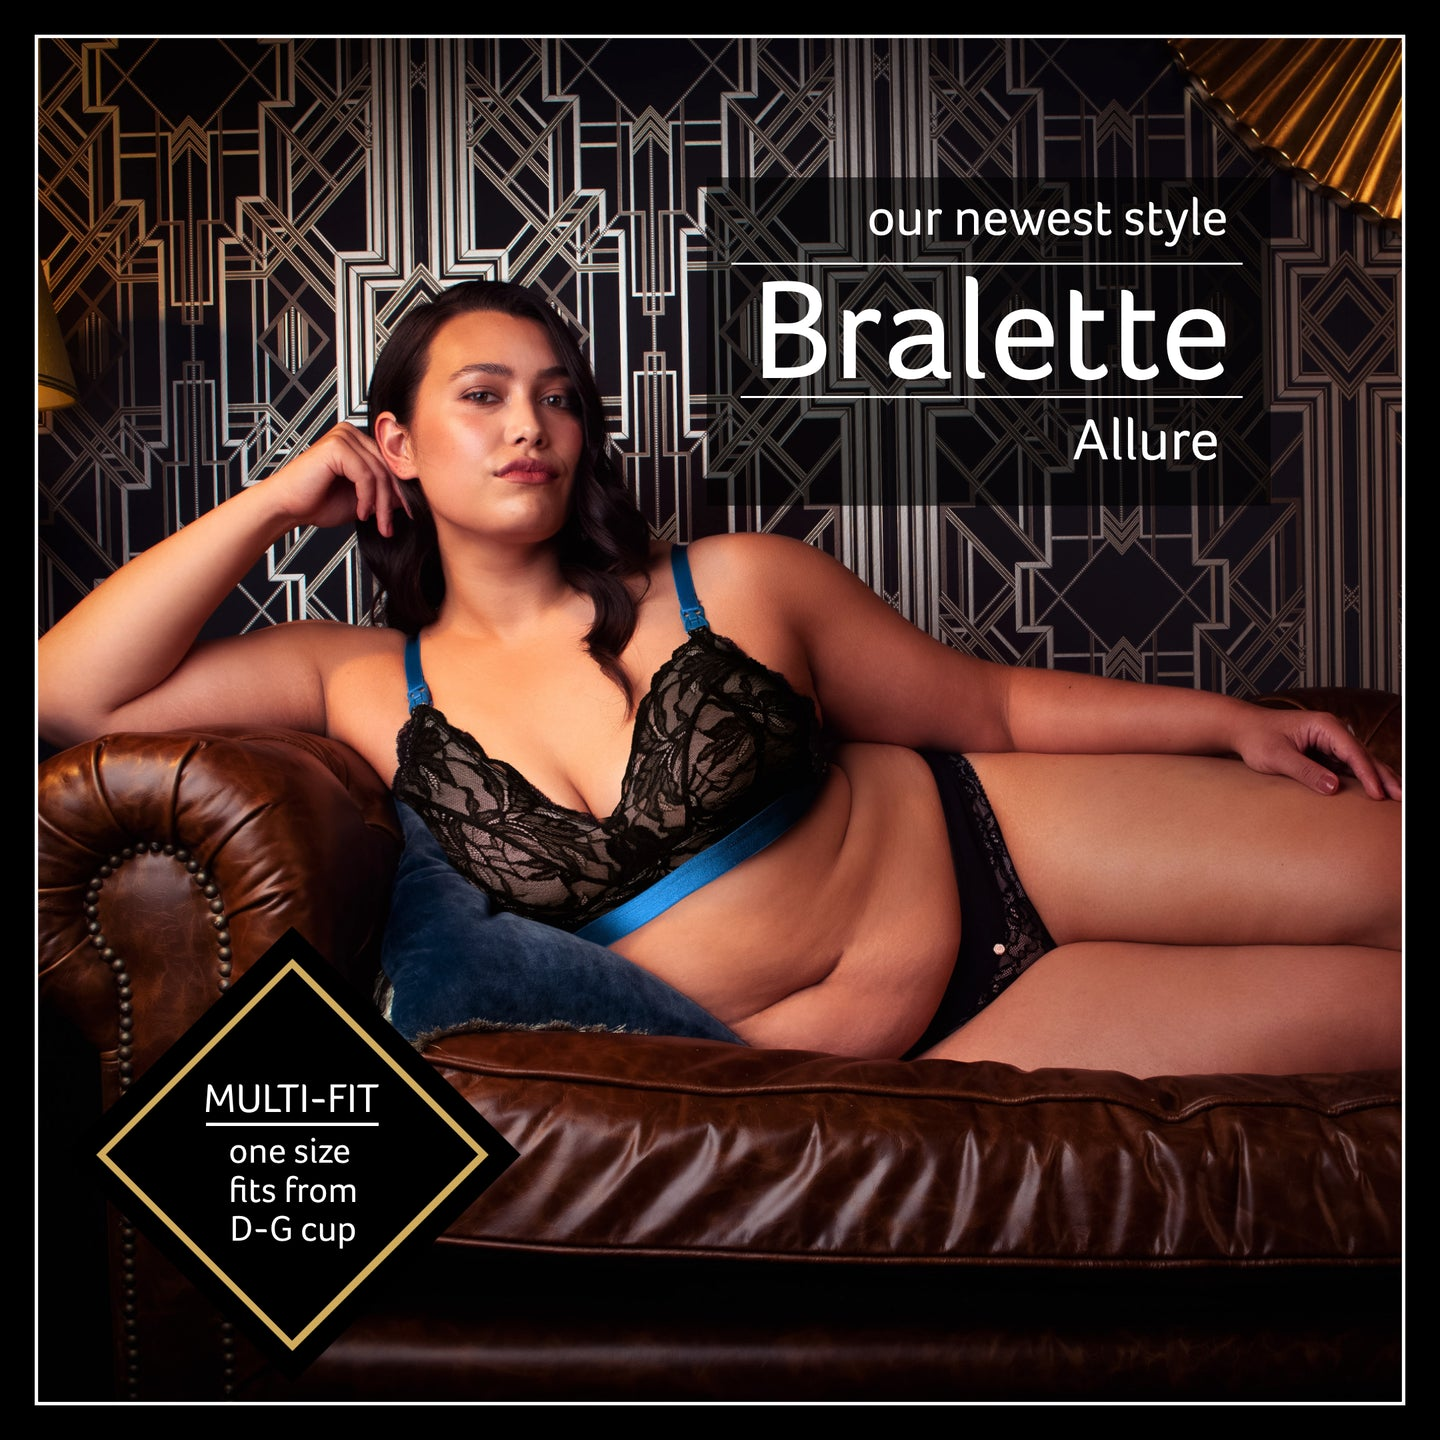 Hotmilk Allure Bralette Nursing Bra